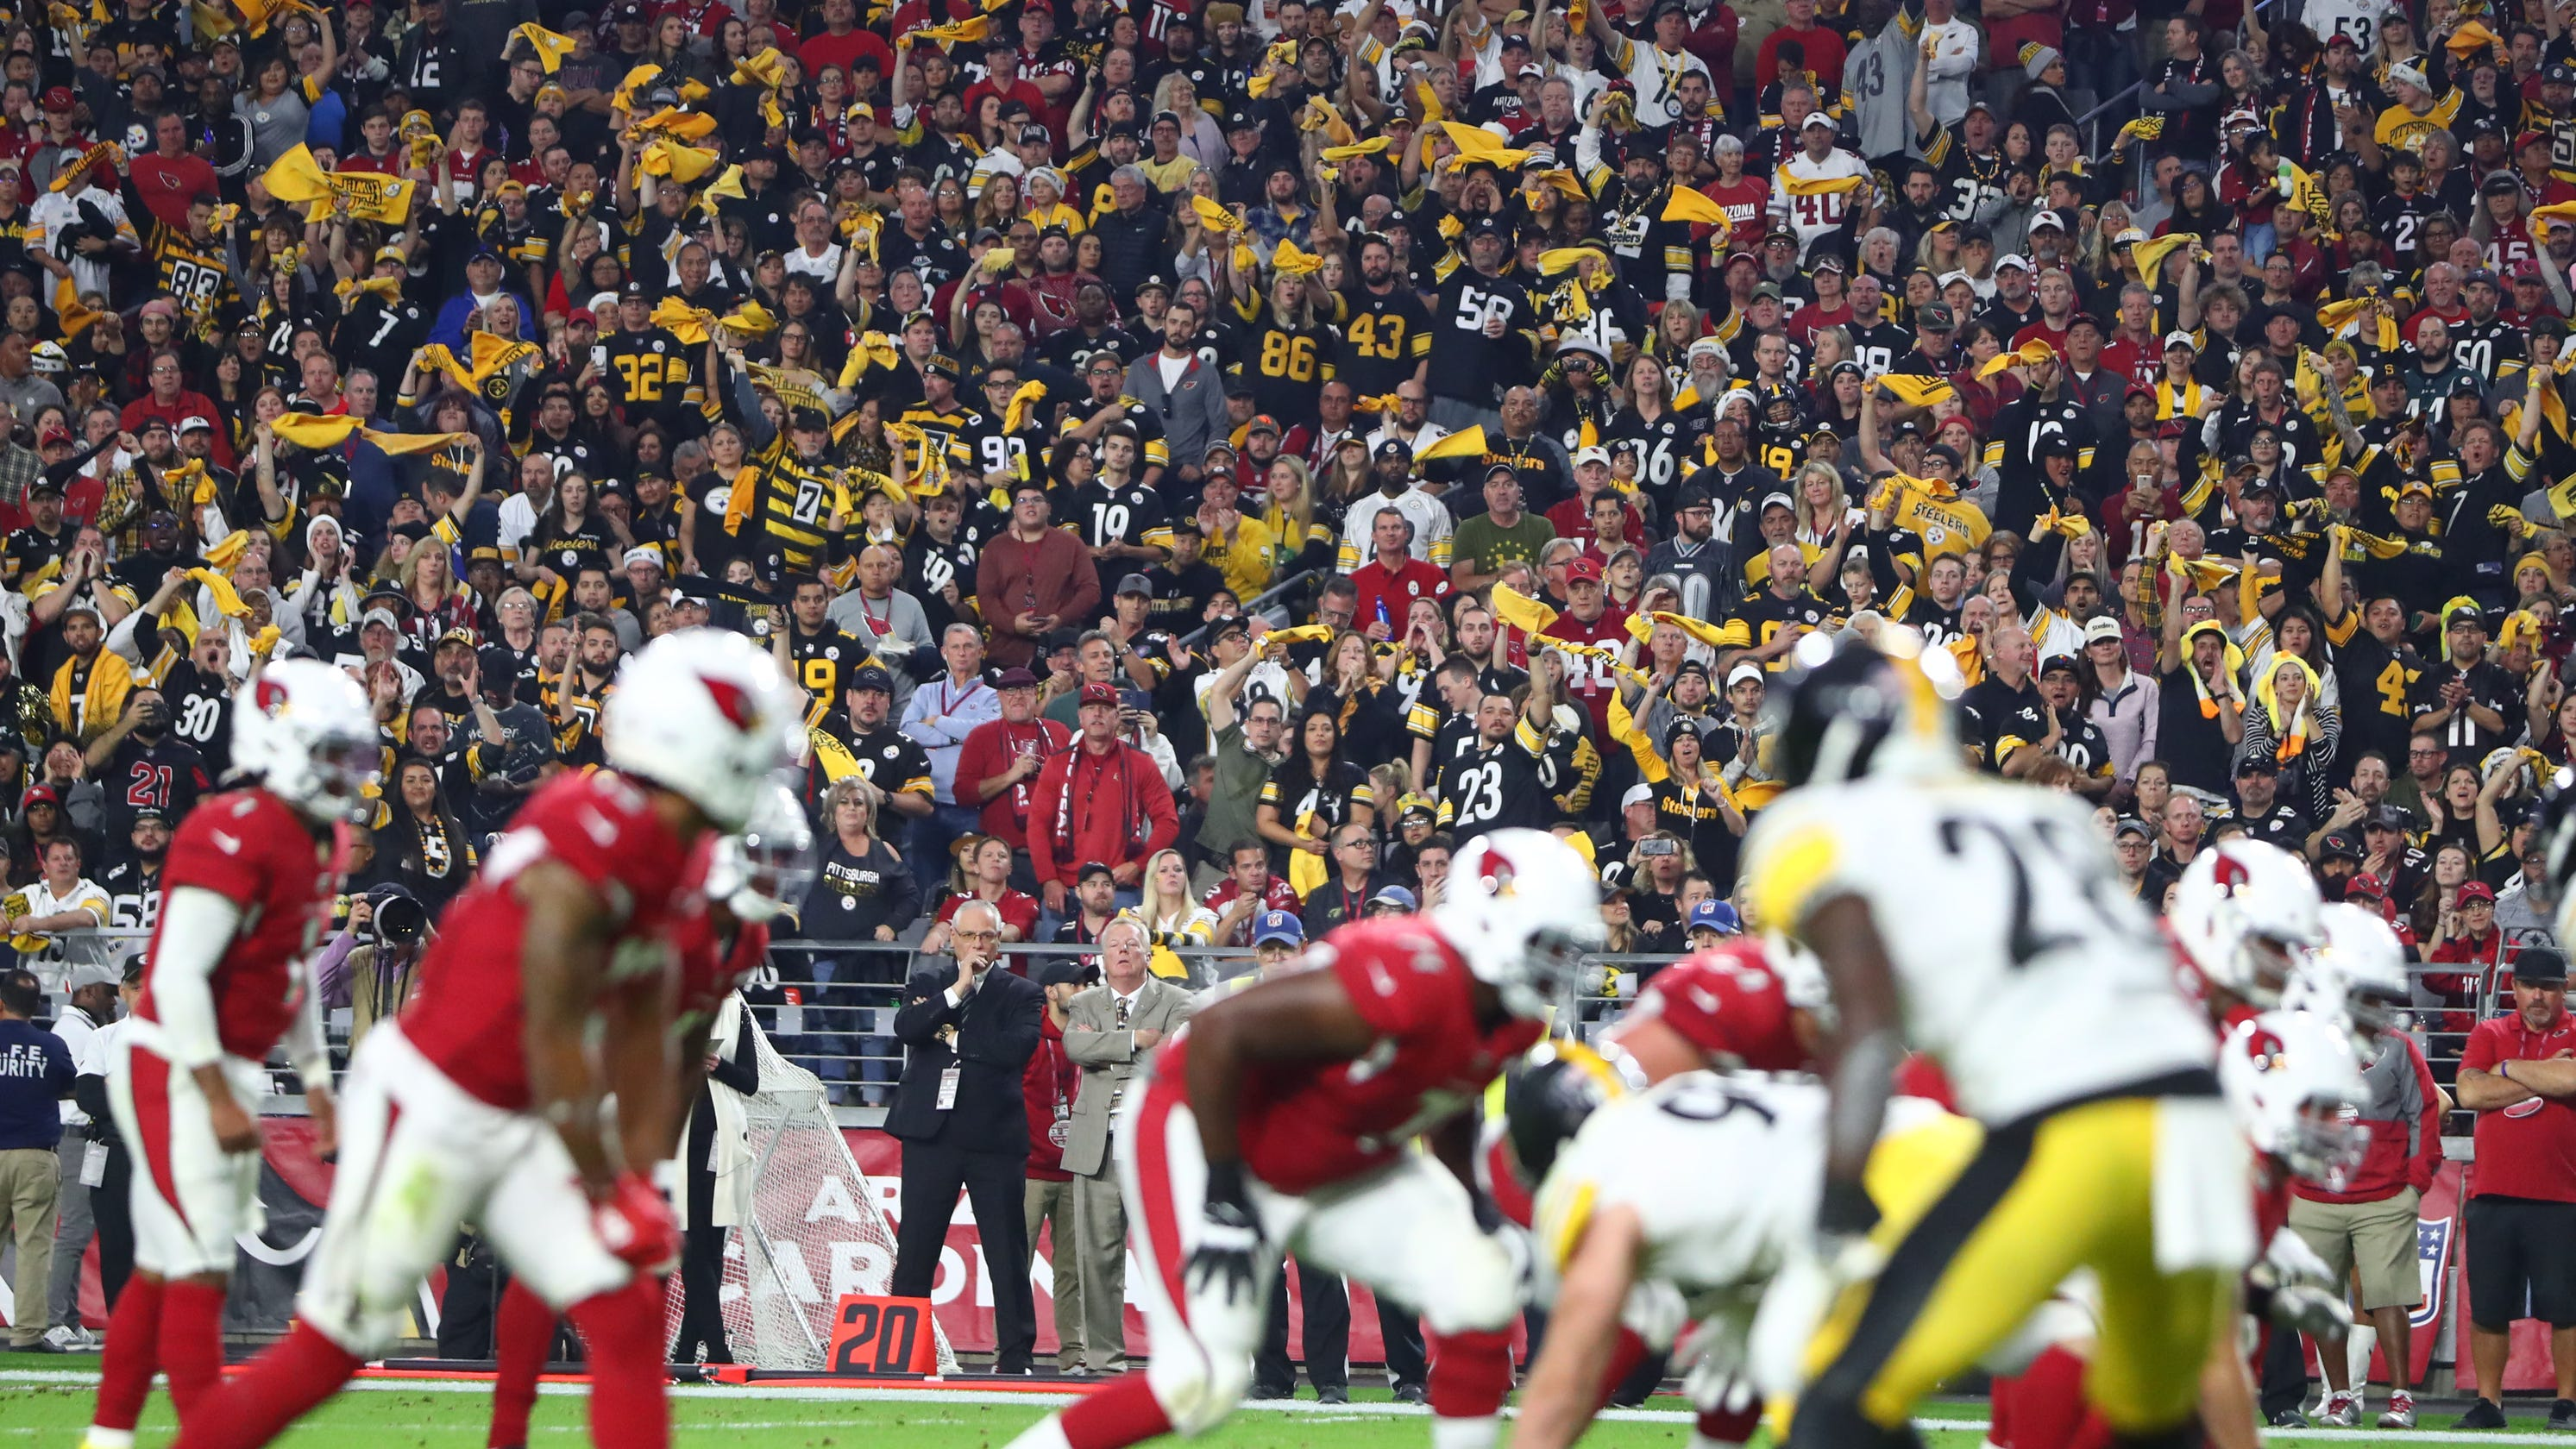 NFL games without fans? 'Sunday Night Football' will make adjustments